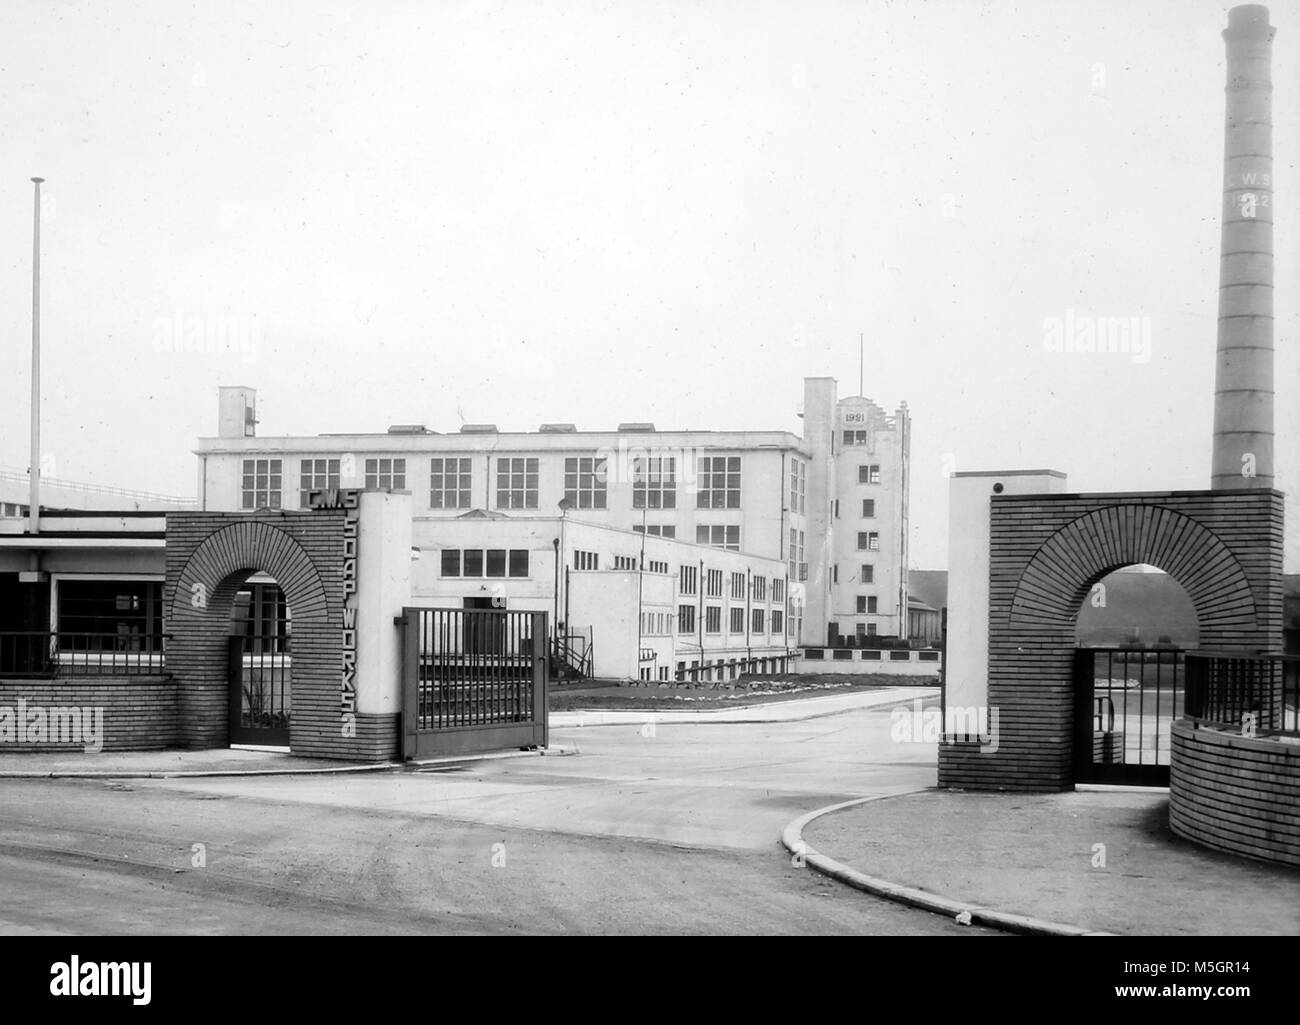 CWS Soap Works, Irlam, Manchester, probably 1920/30s - Stock Image